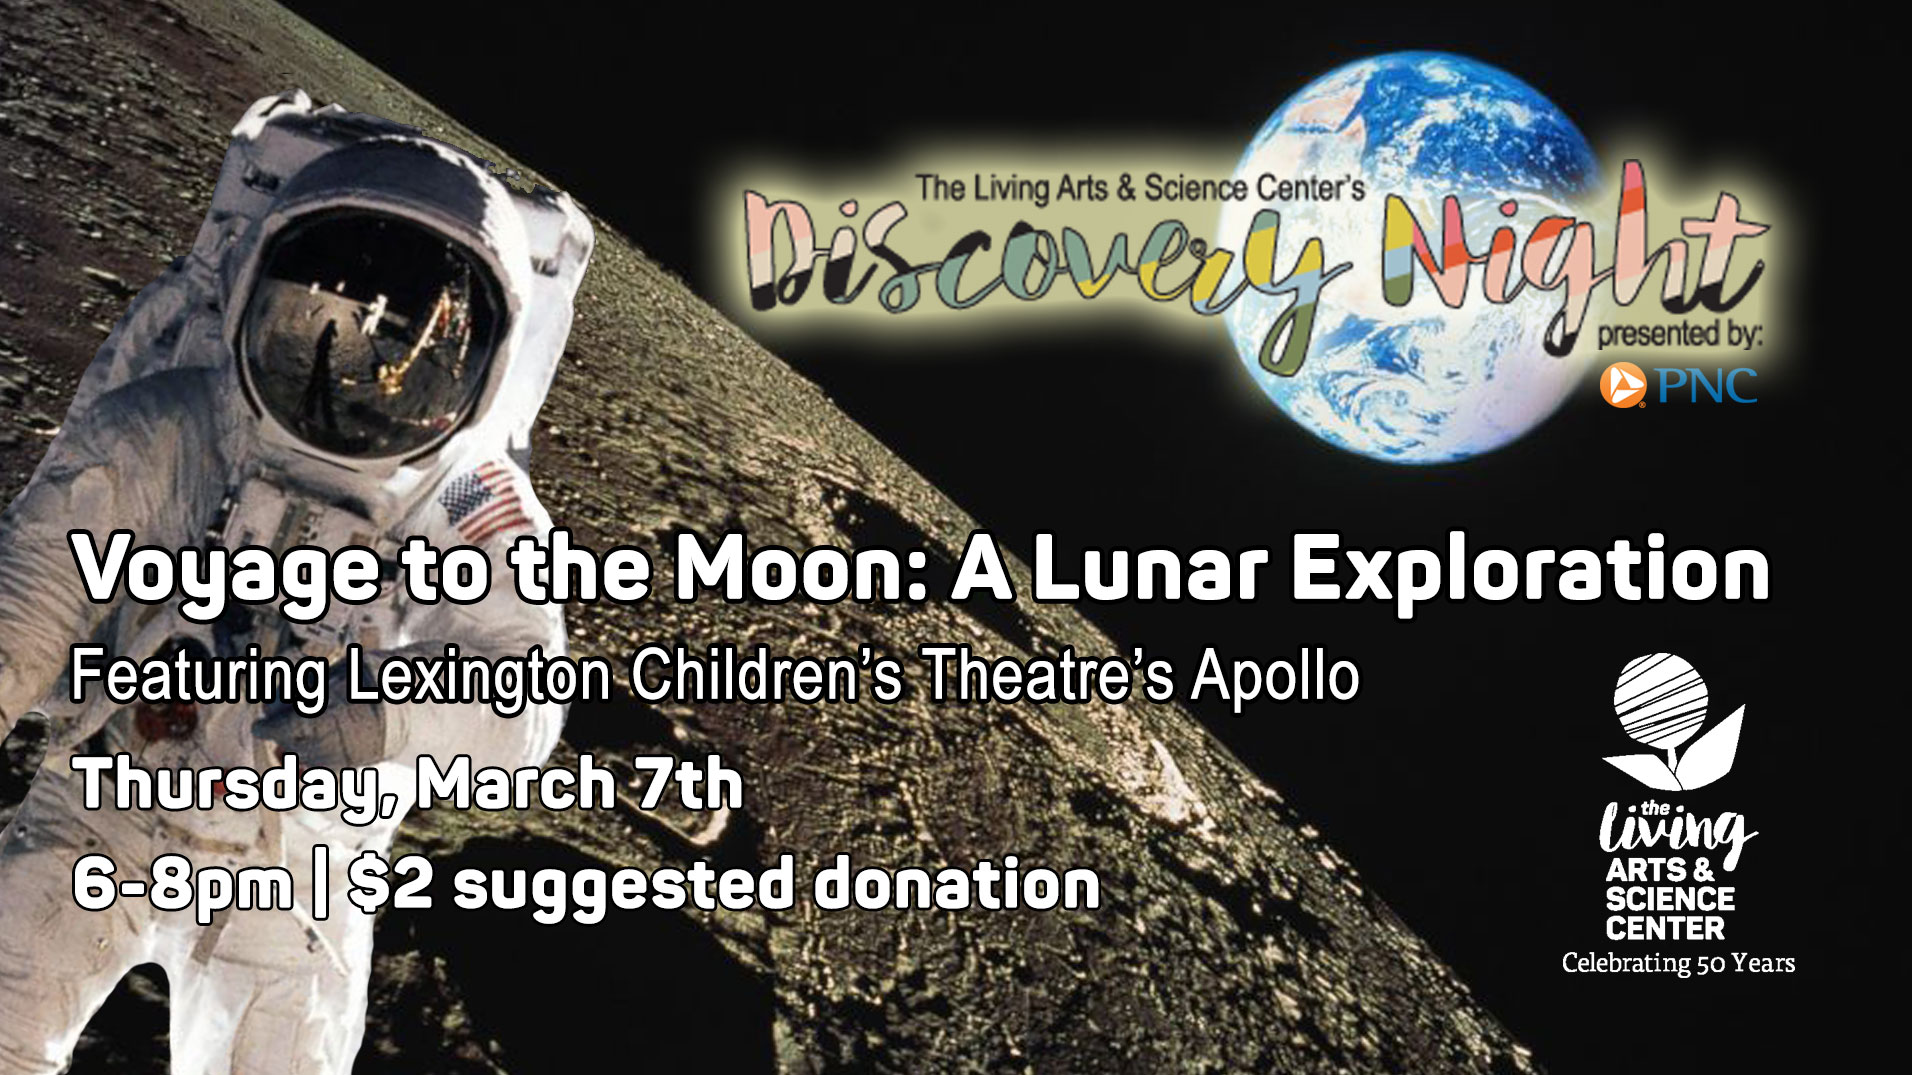 Discovery Night: Voyage To The Moon With Lexington Children's Theatre's Apollo